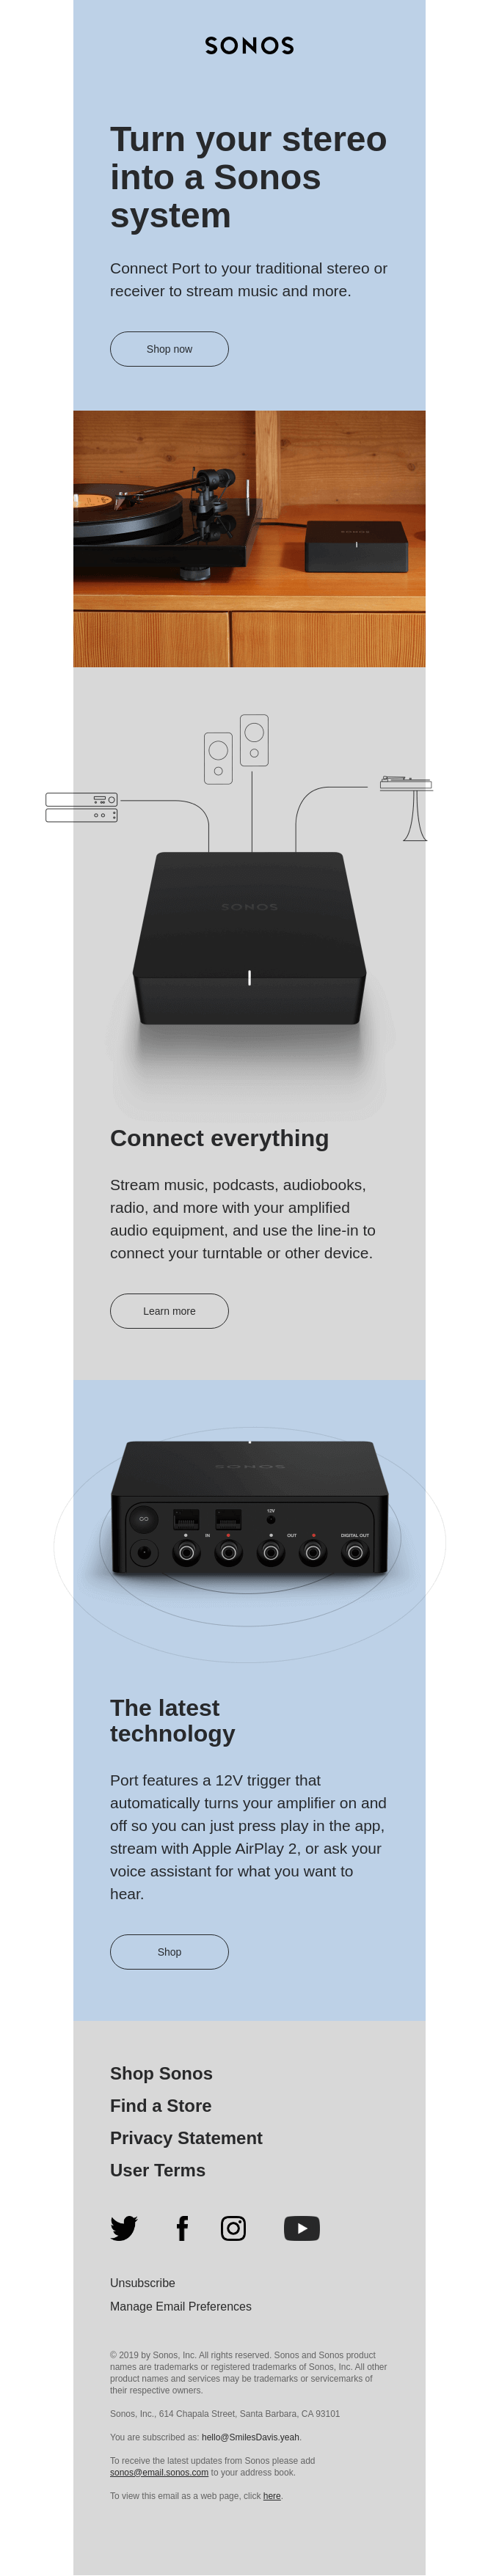 Sonos email with 3D imagery, simple illustrations, and subtle off-grid abstractions